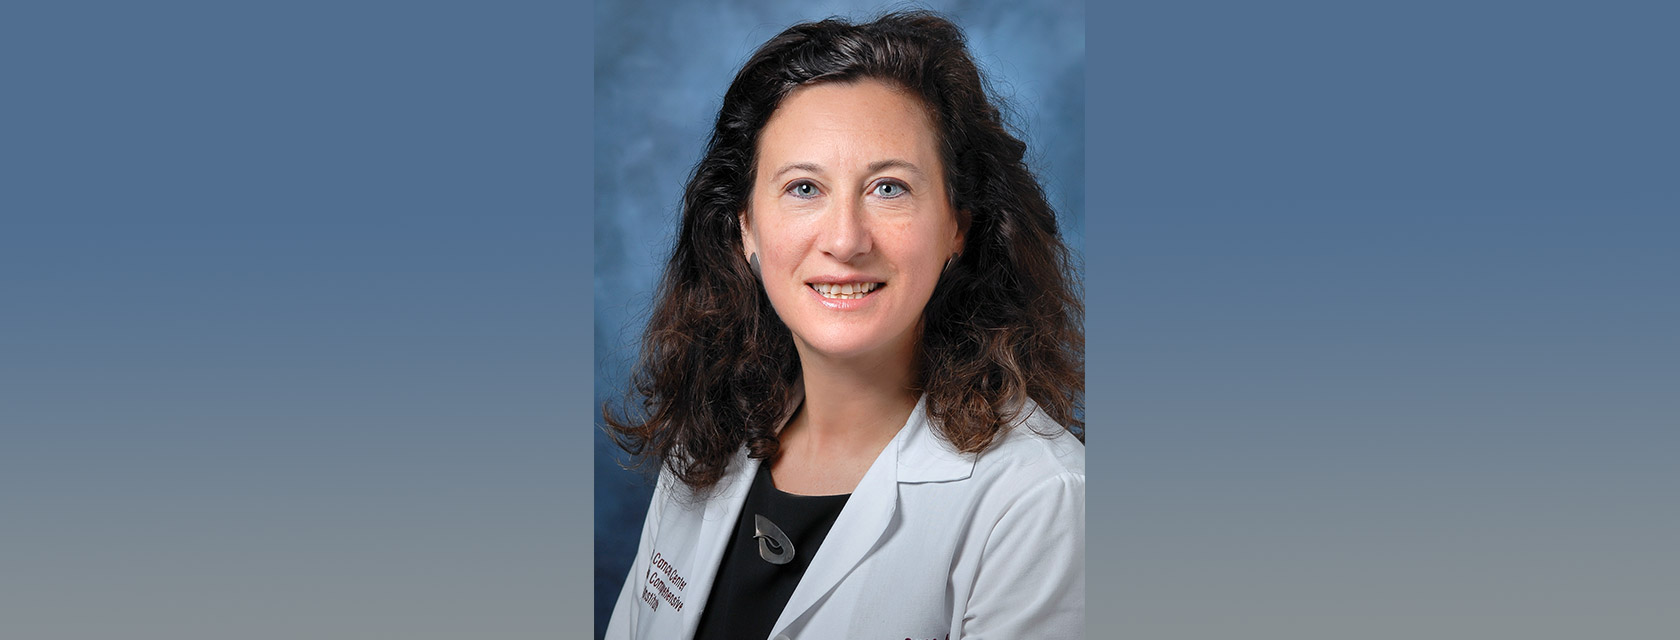 Ilana Cass, MD, Named Chair of Obstetrics & Gynecology at